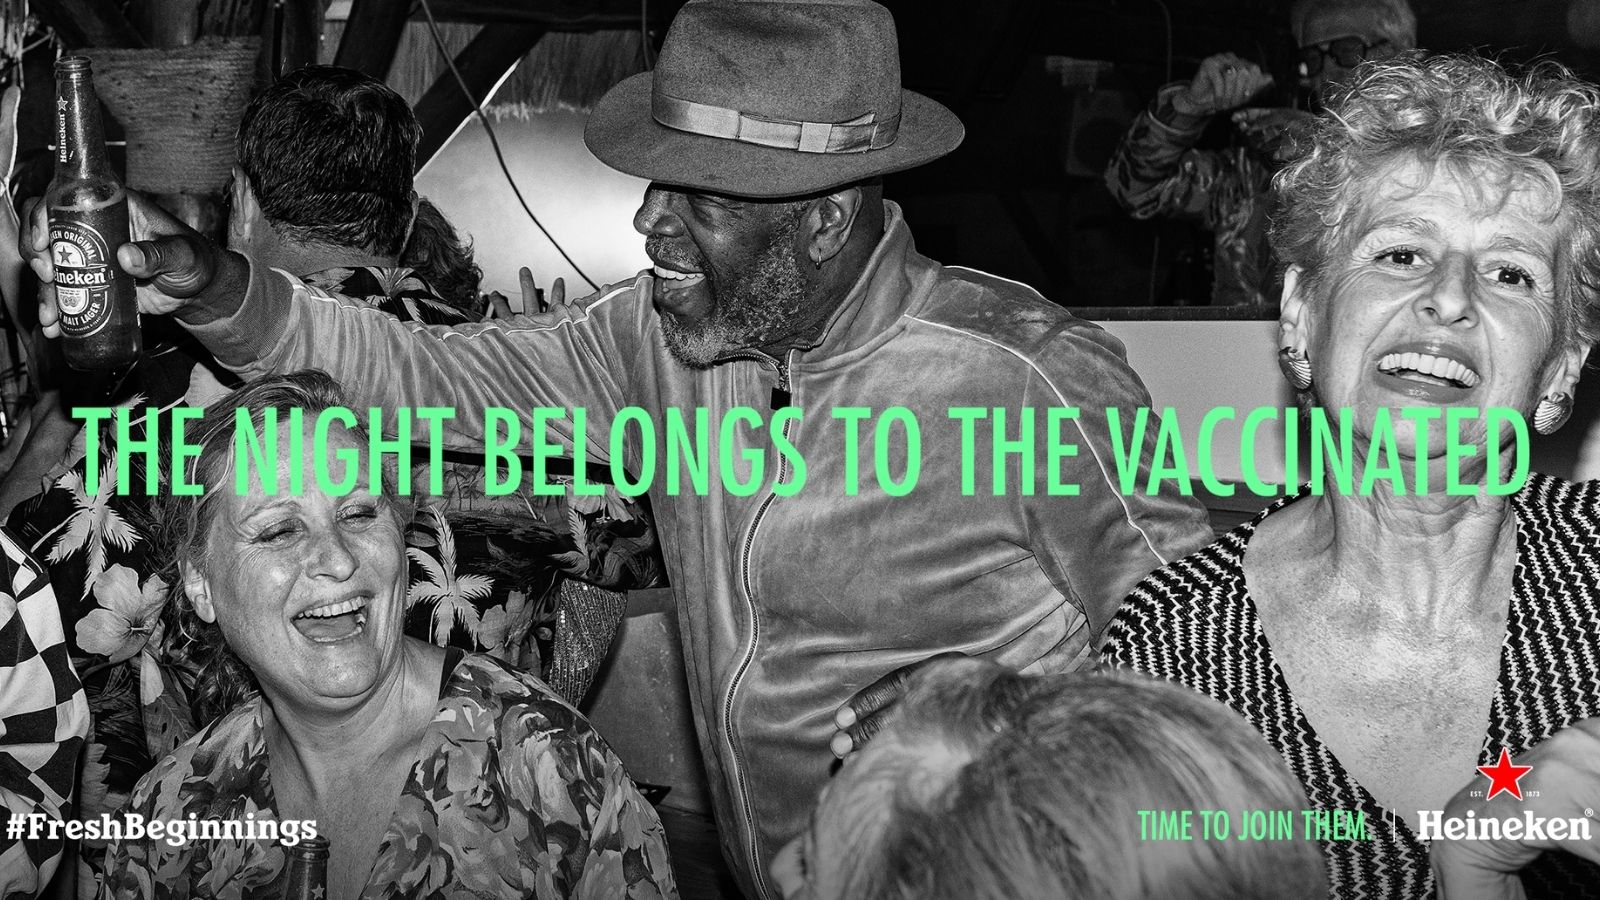 The Old Are Young Again, Heineken Shows What Vaccinated People Get up to at Night